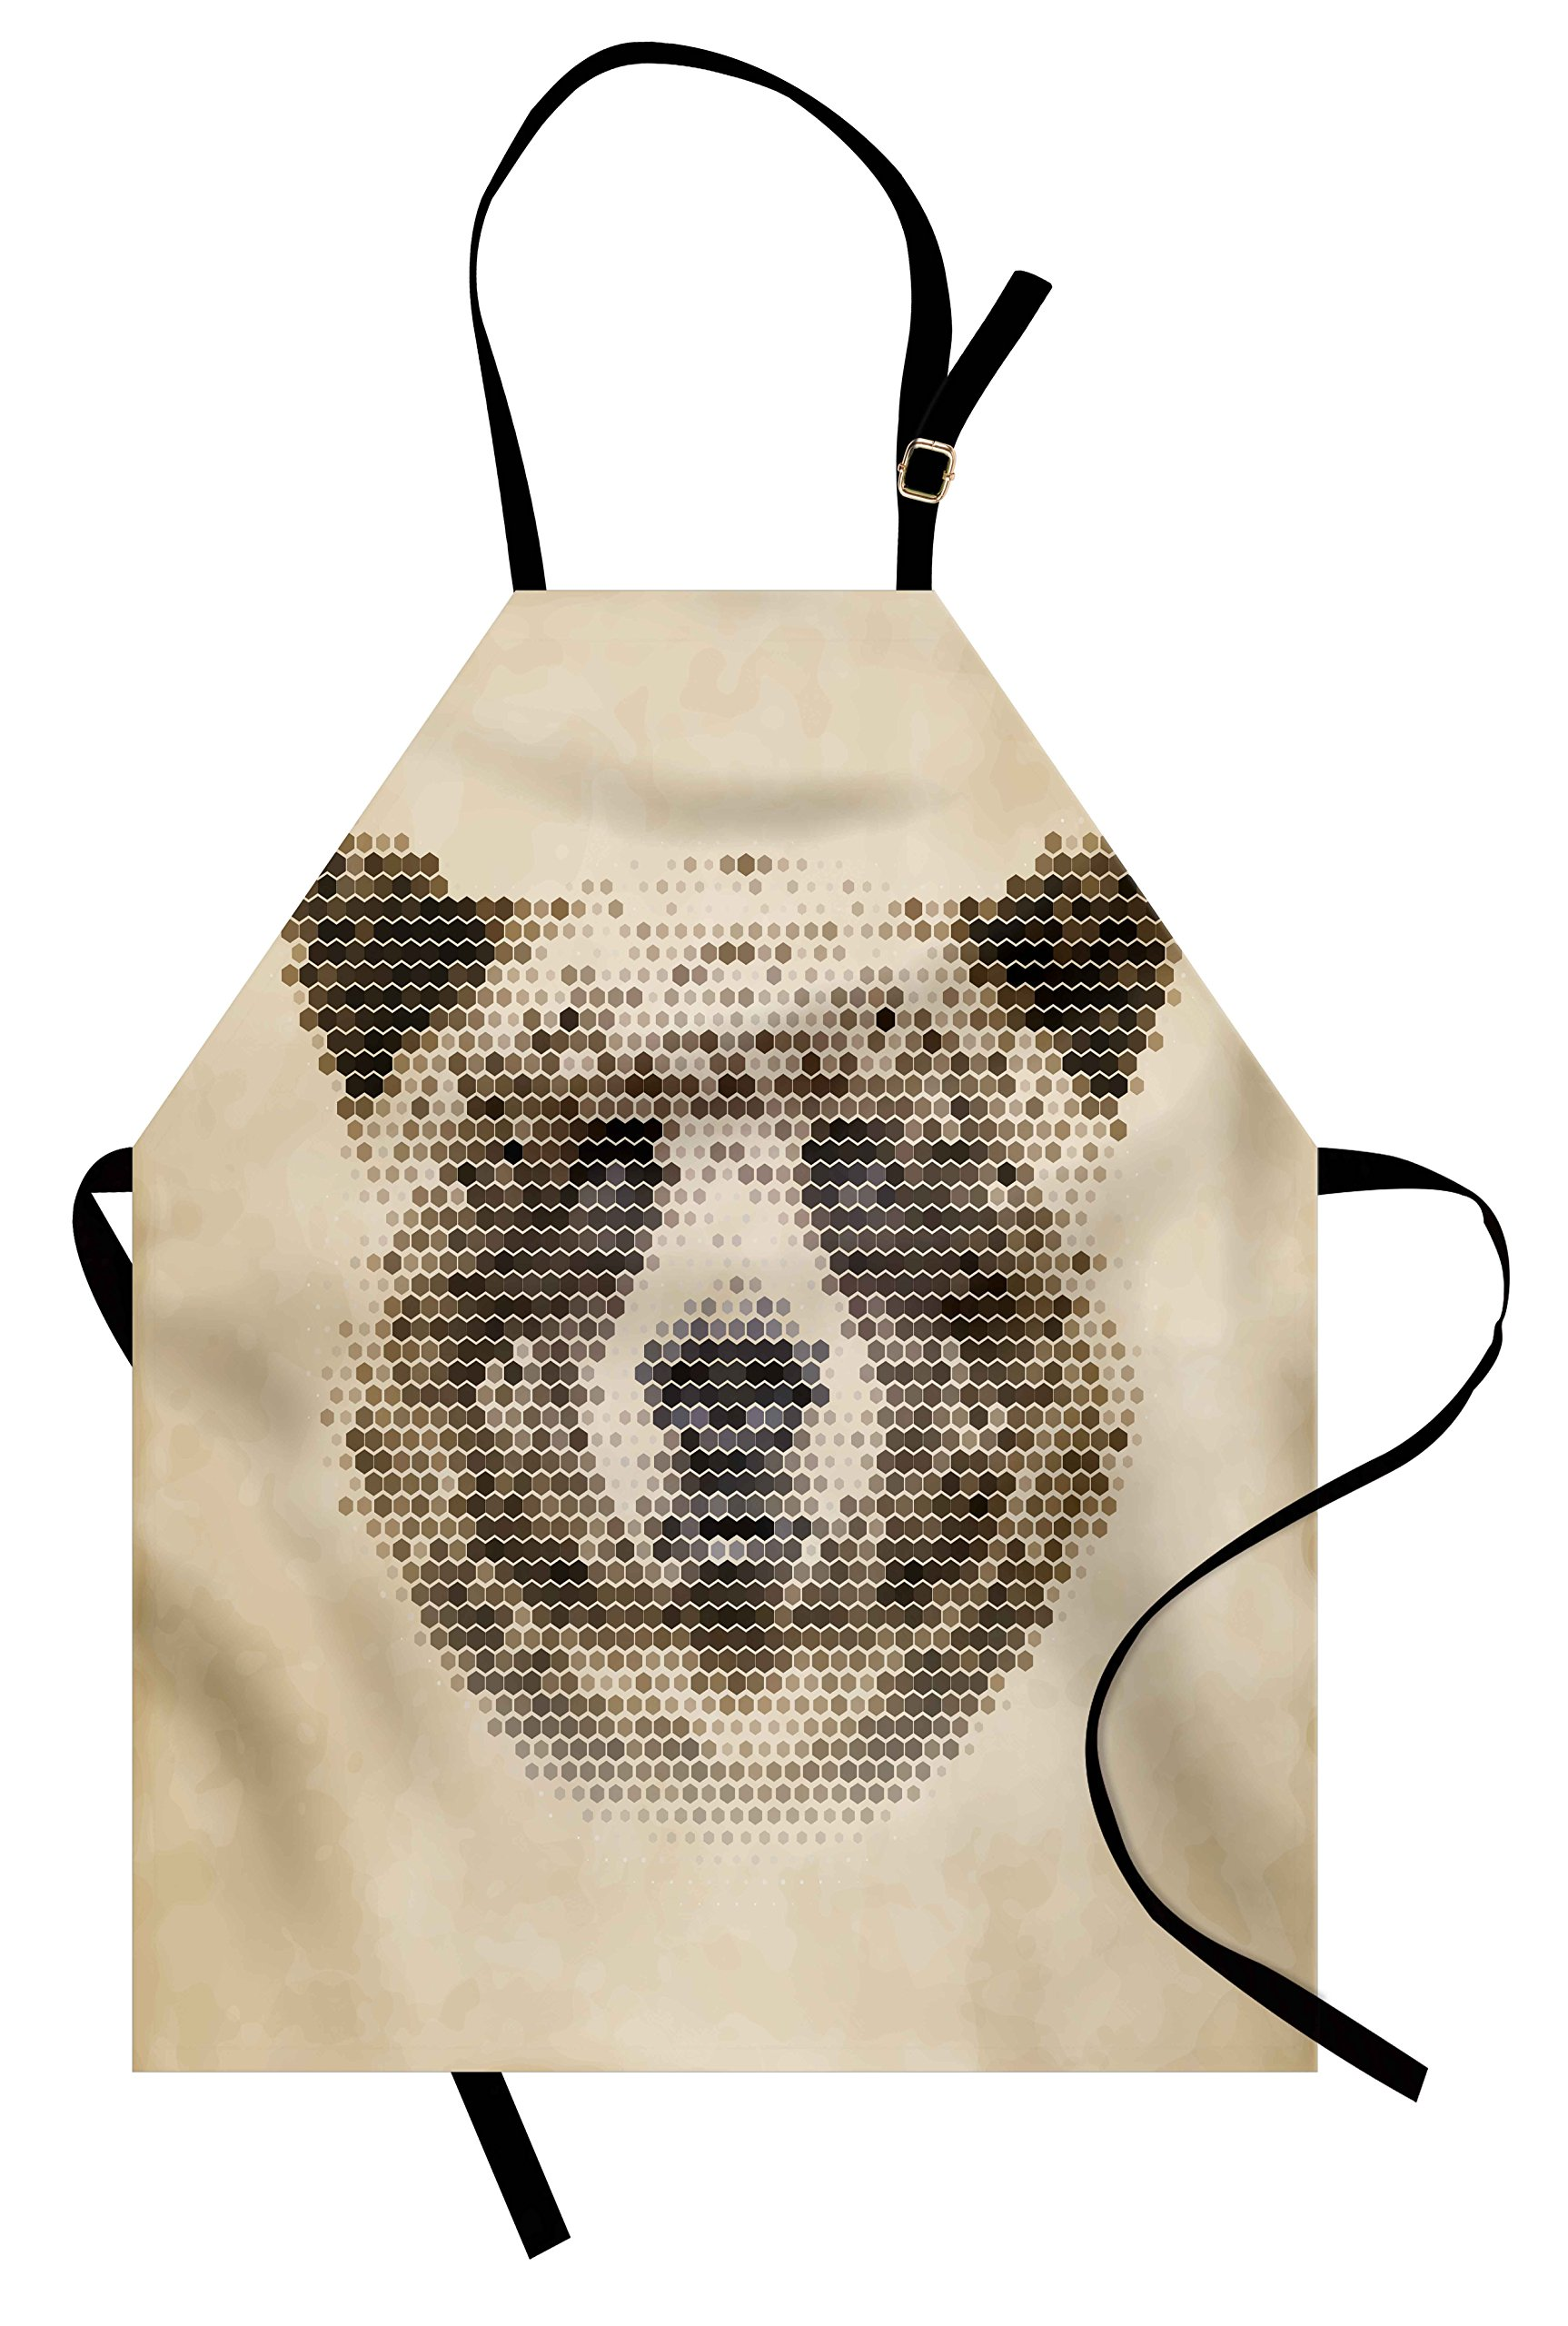 Ambesonne Bear Apron, Wild Animal Head with Hexagonal Dots Blurry Looking Portrait Vintage Geometric Modern, Unisex Kitchen Bib Apron with Adjustable Neck for Cooking Baking Gardening, Tan Brown